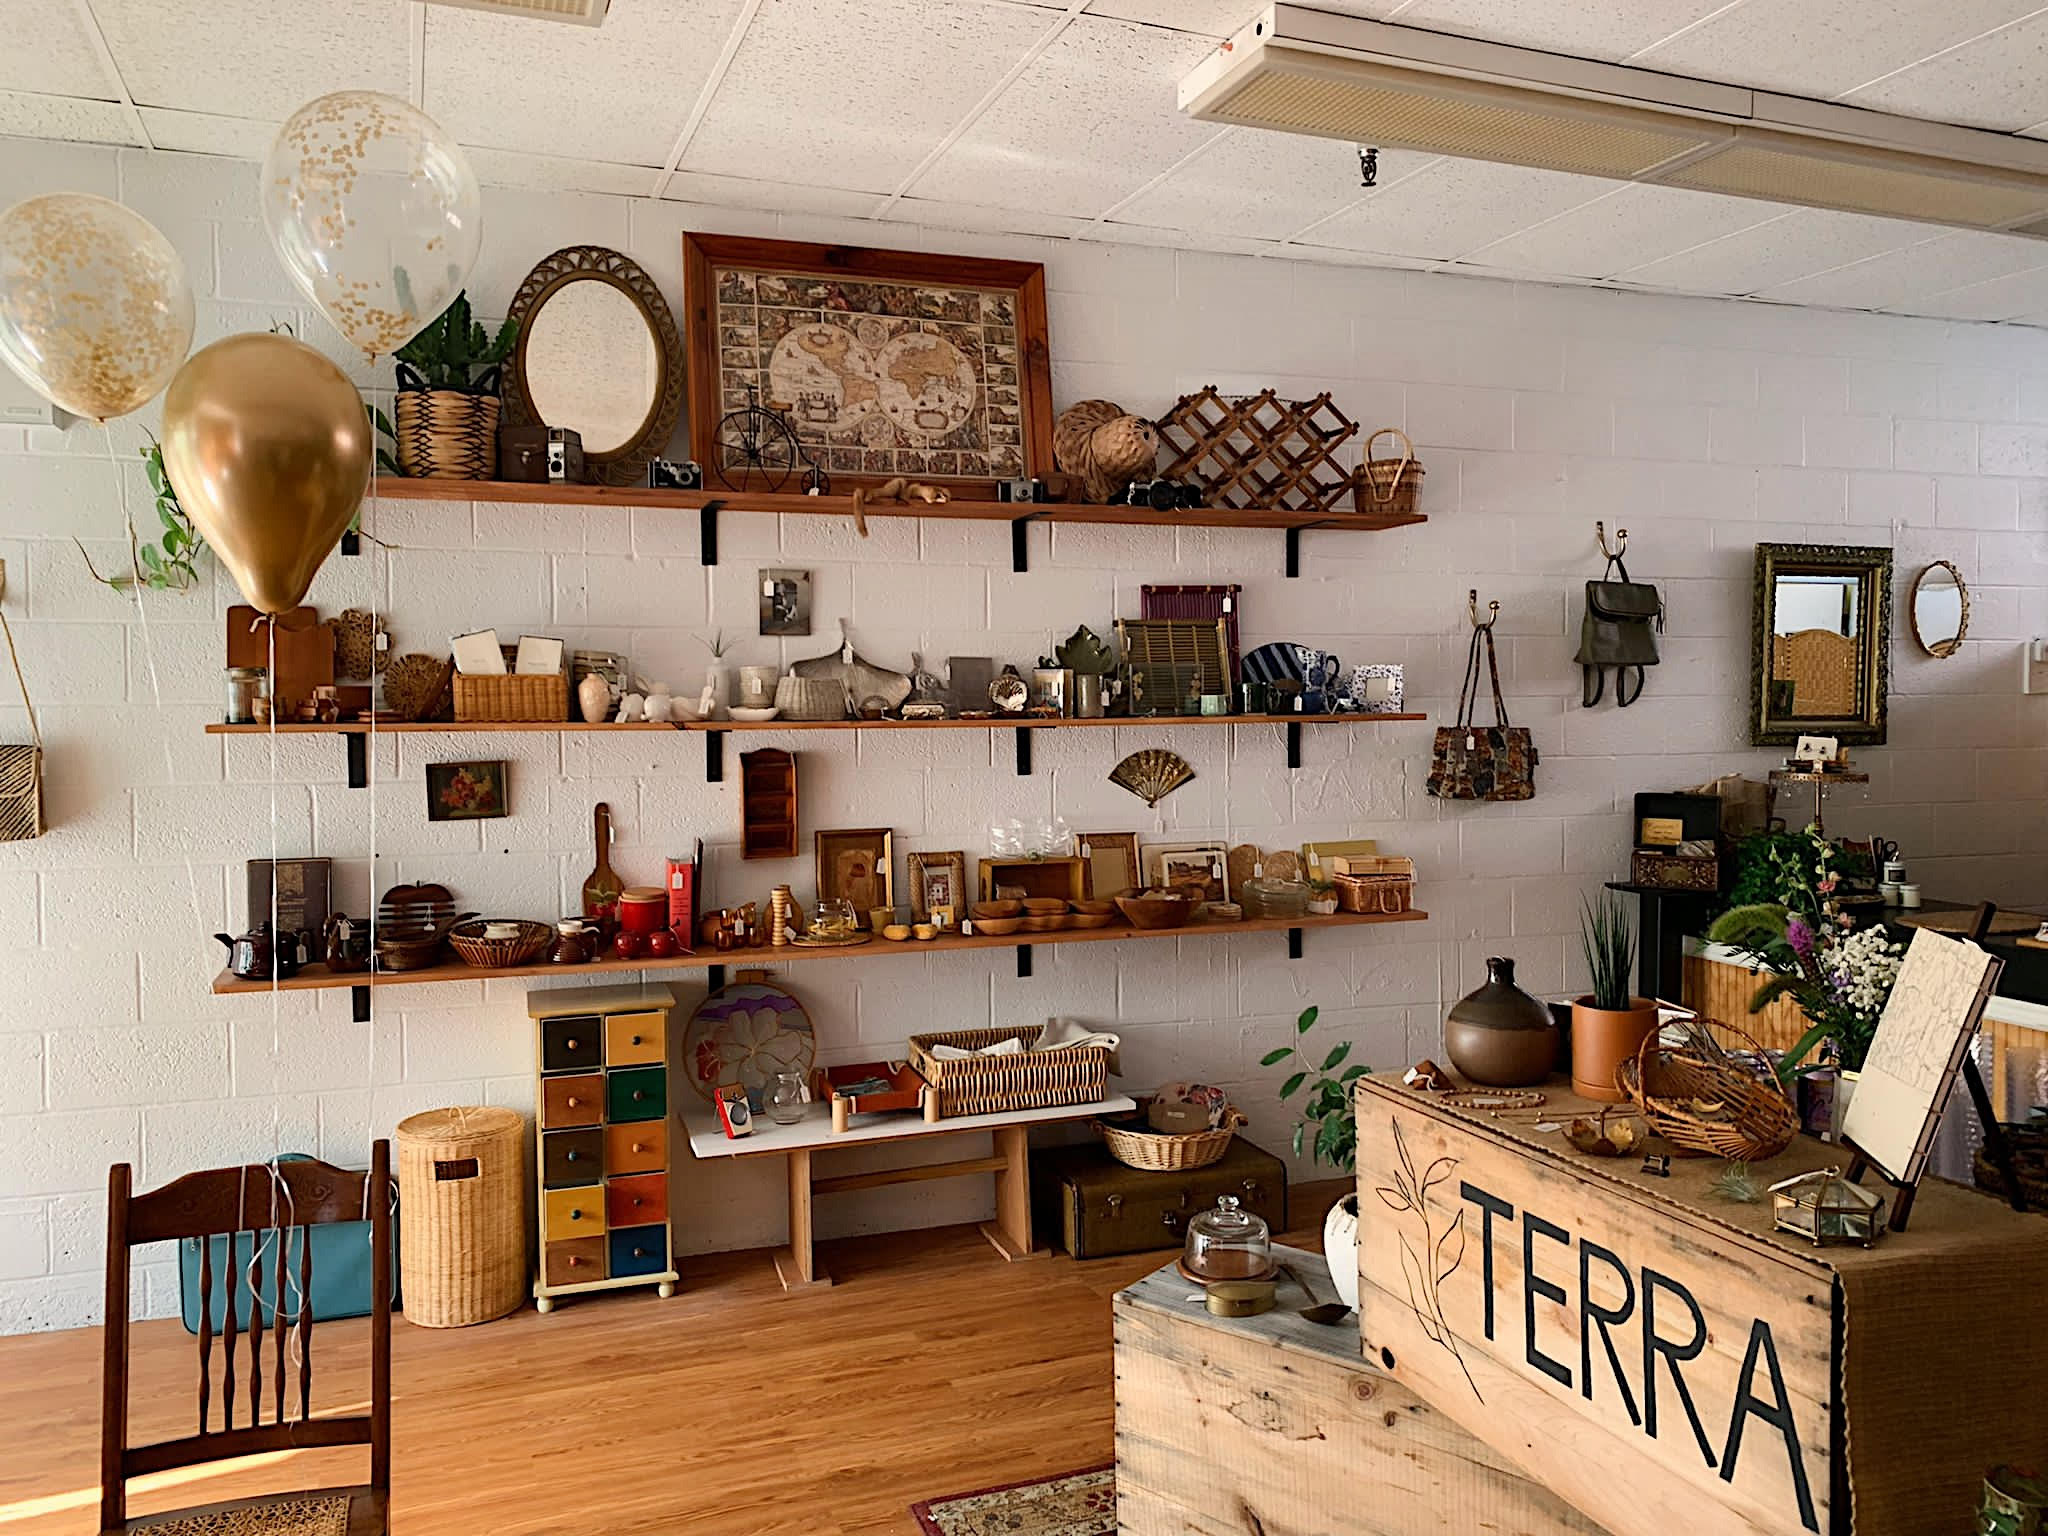 Samantha White '19, an art major at MCLA, is using her curation skills and artistic eye on a new project: Terra, a curated secondhand shop on Ashland Street in North Adams.